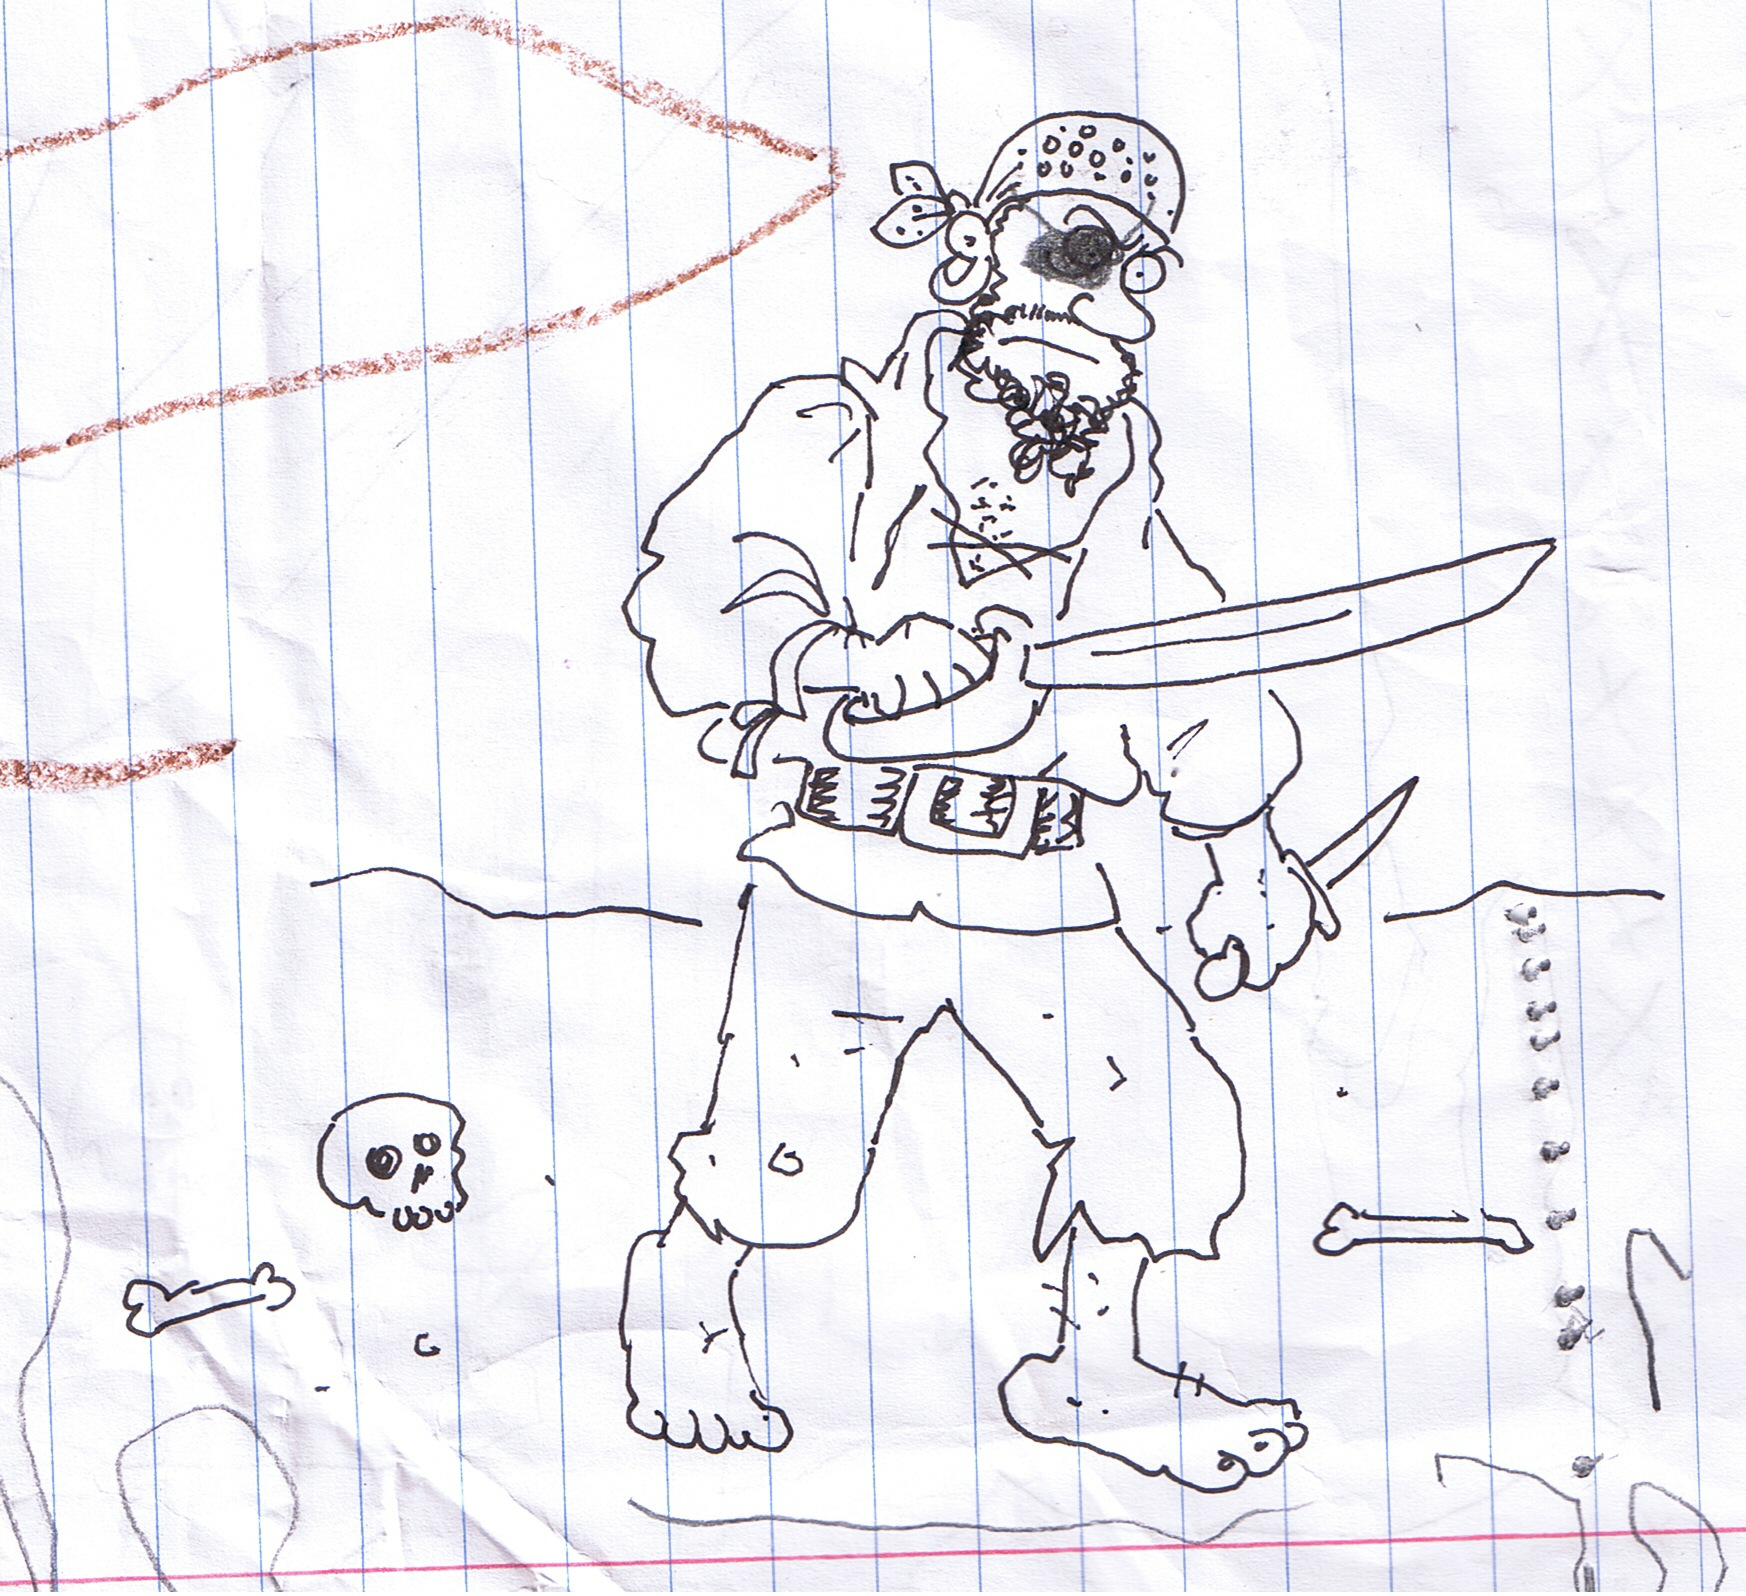 Drawn dagger pirate For Heroic a make Gruesome